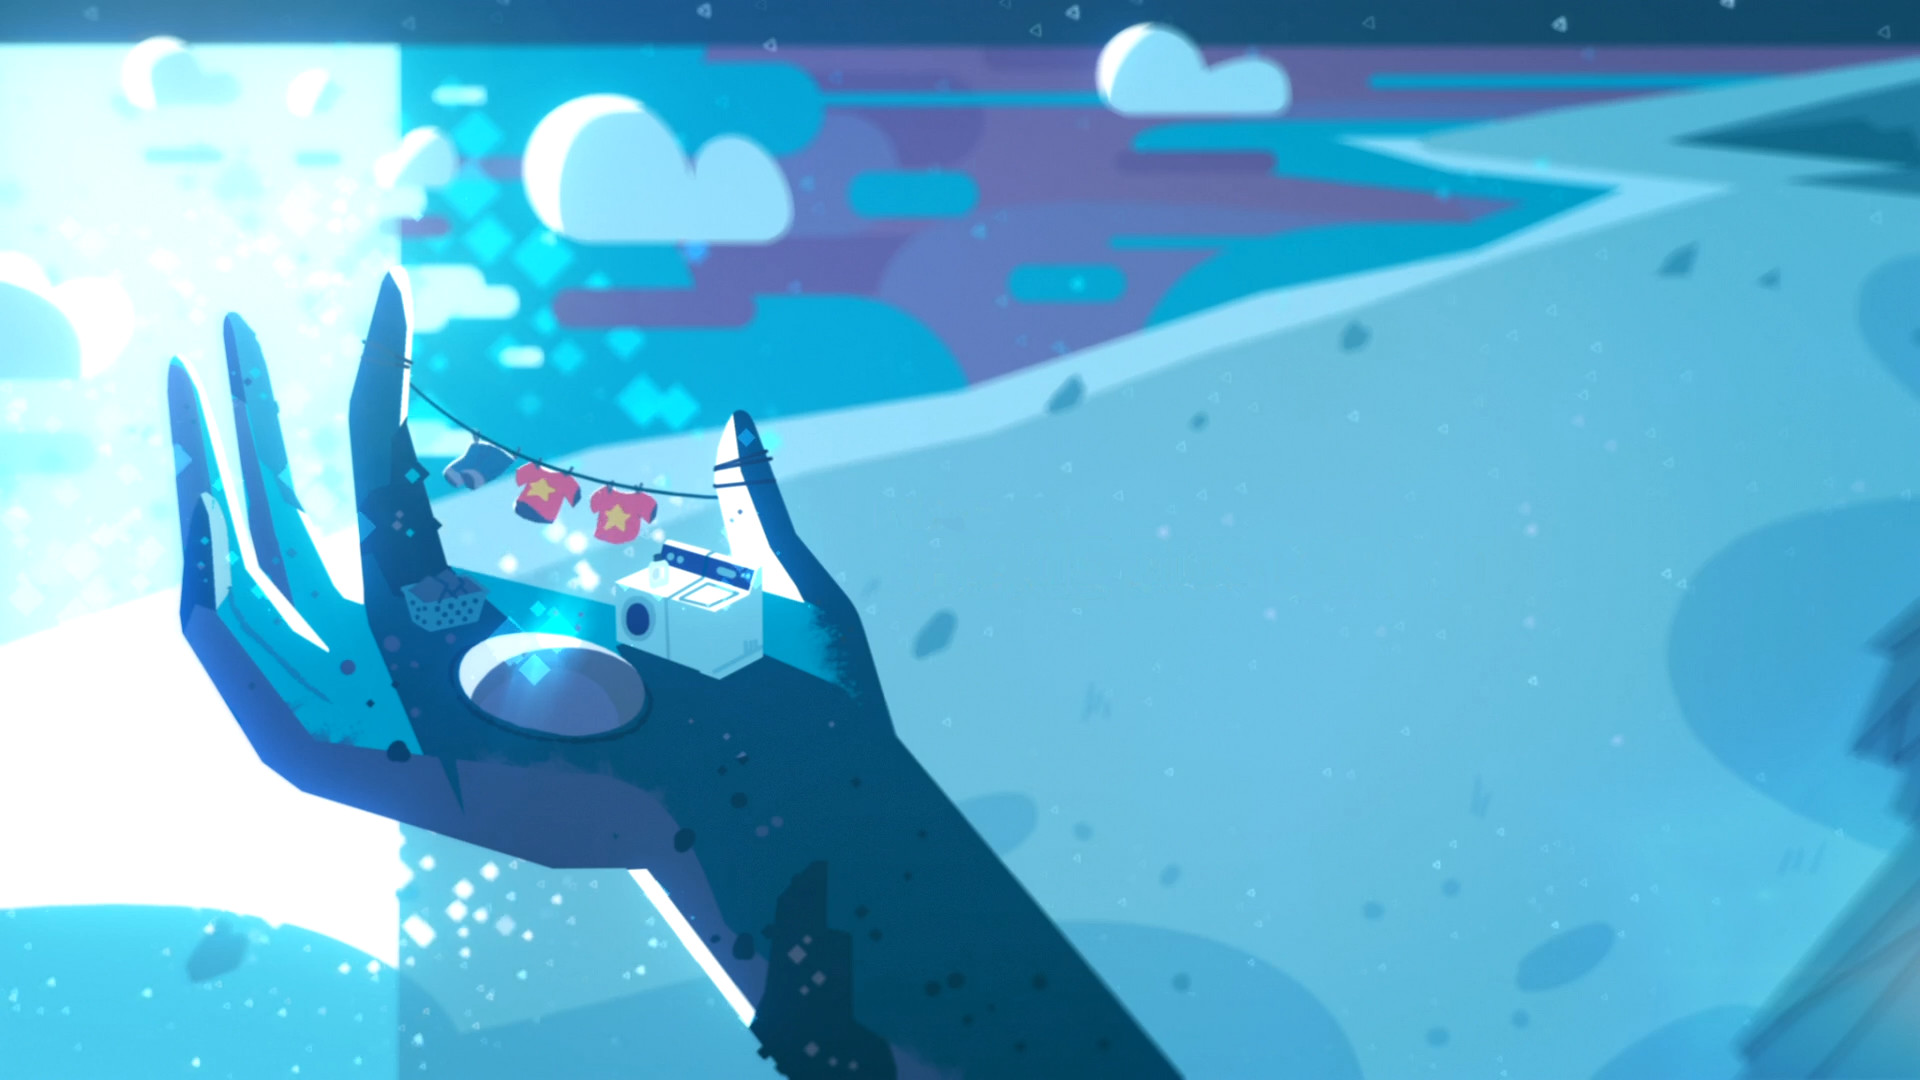 Explore More Wallpapers in the Steven Universe Subcategory!